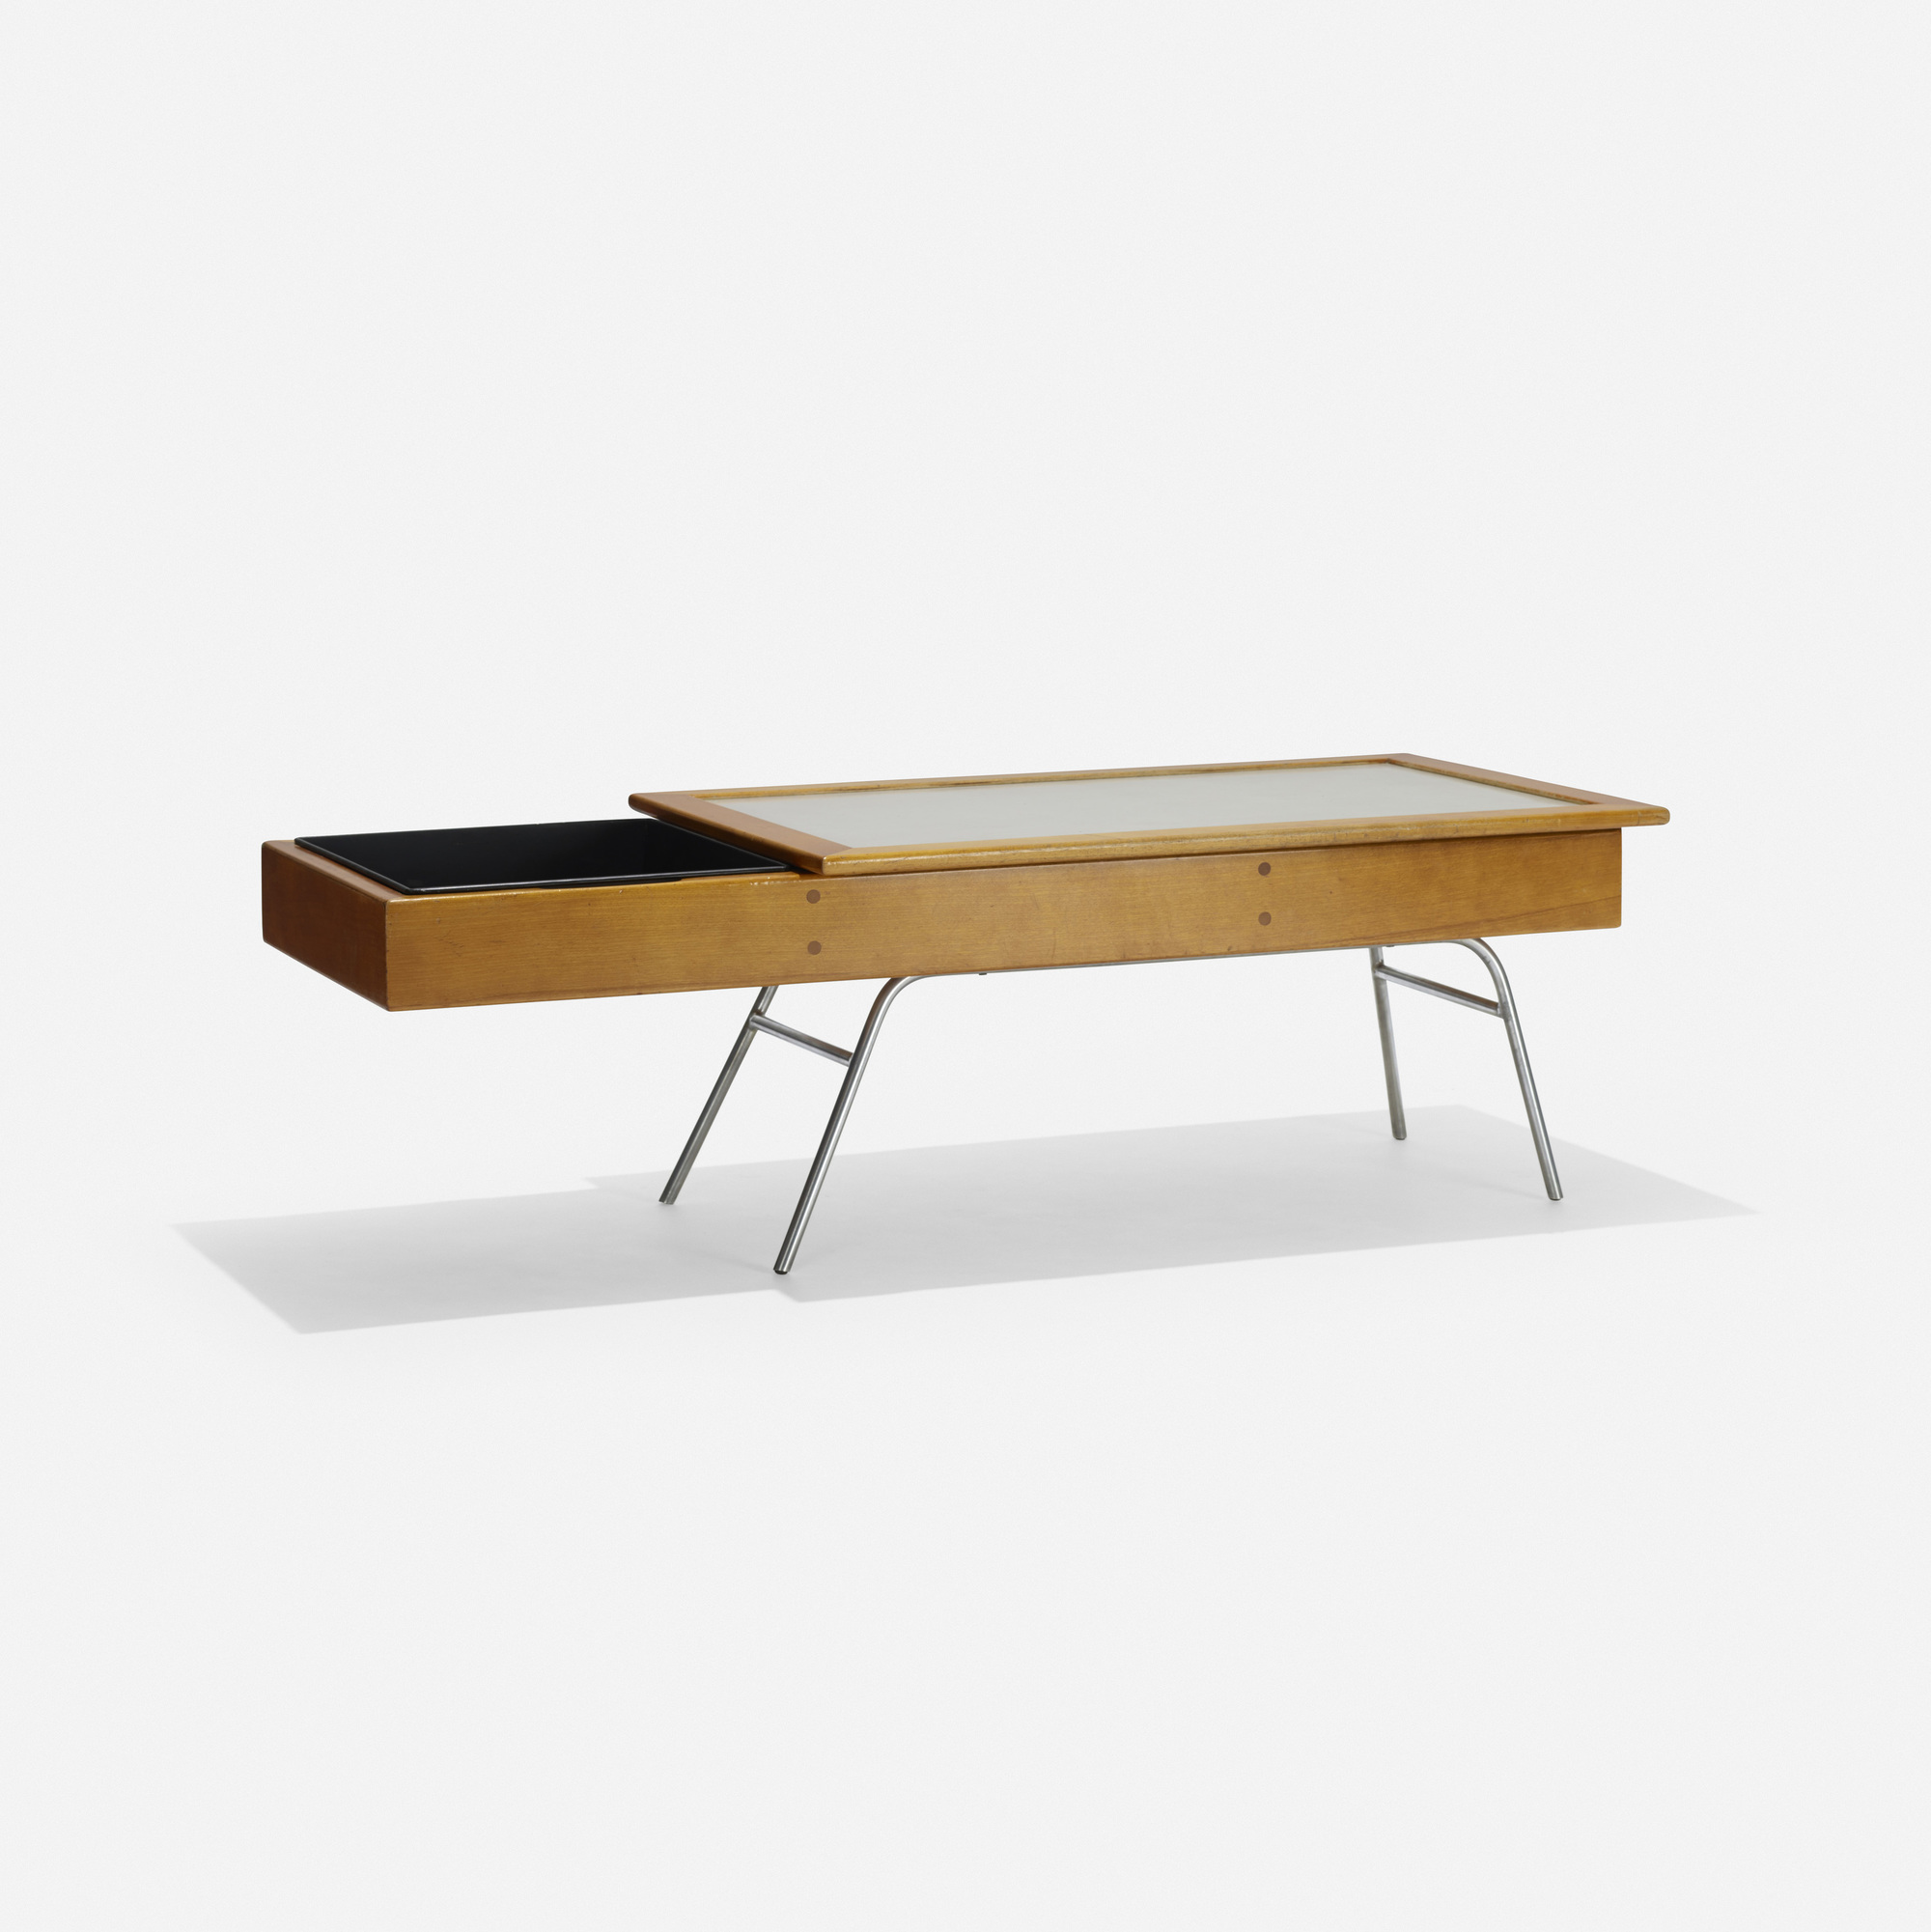 105: George Nelson & Associates / coffee table, model 4662 (2 of 3)